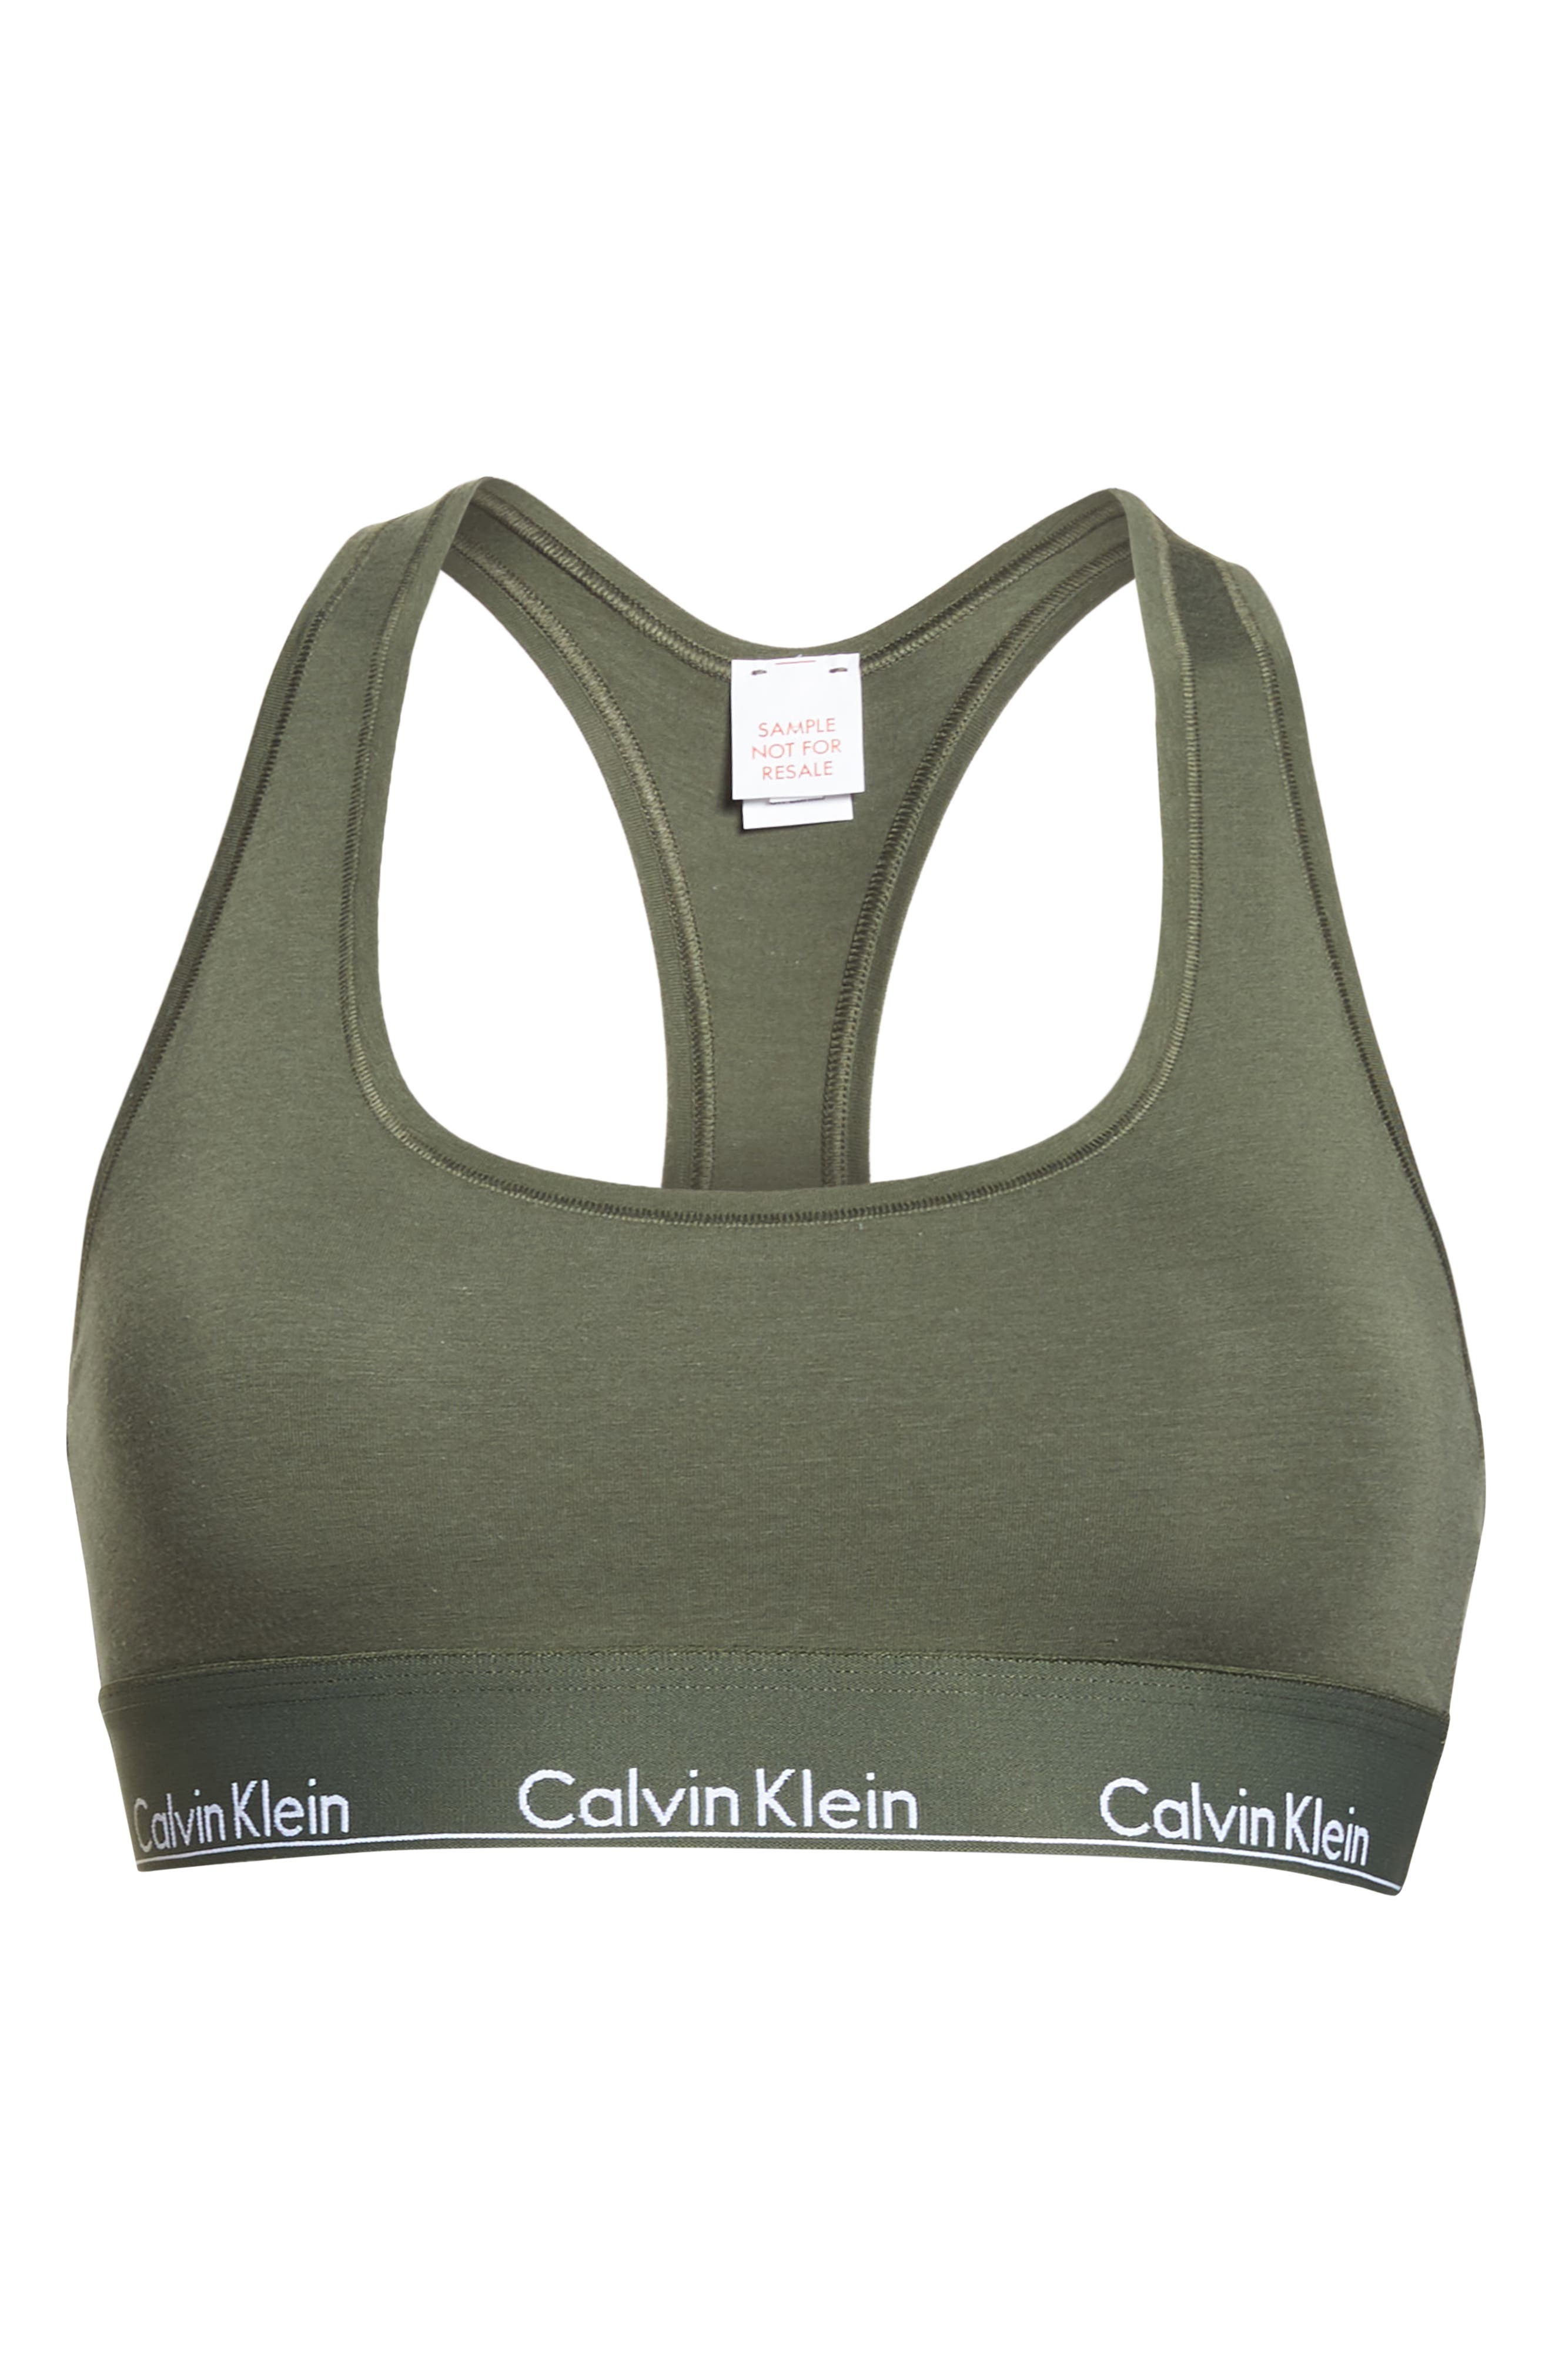 Modern Cotton Collection Cotton Blend Racerback Bralette,                             Alternate thumbnail 8, color,                             388